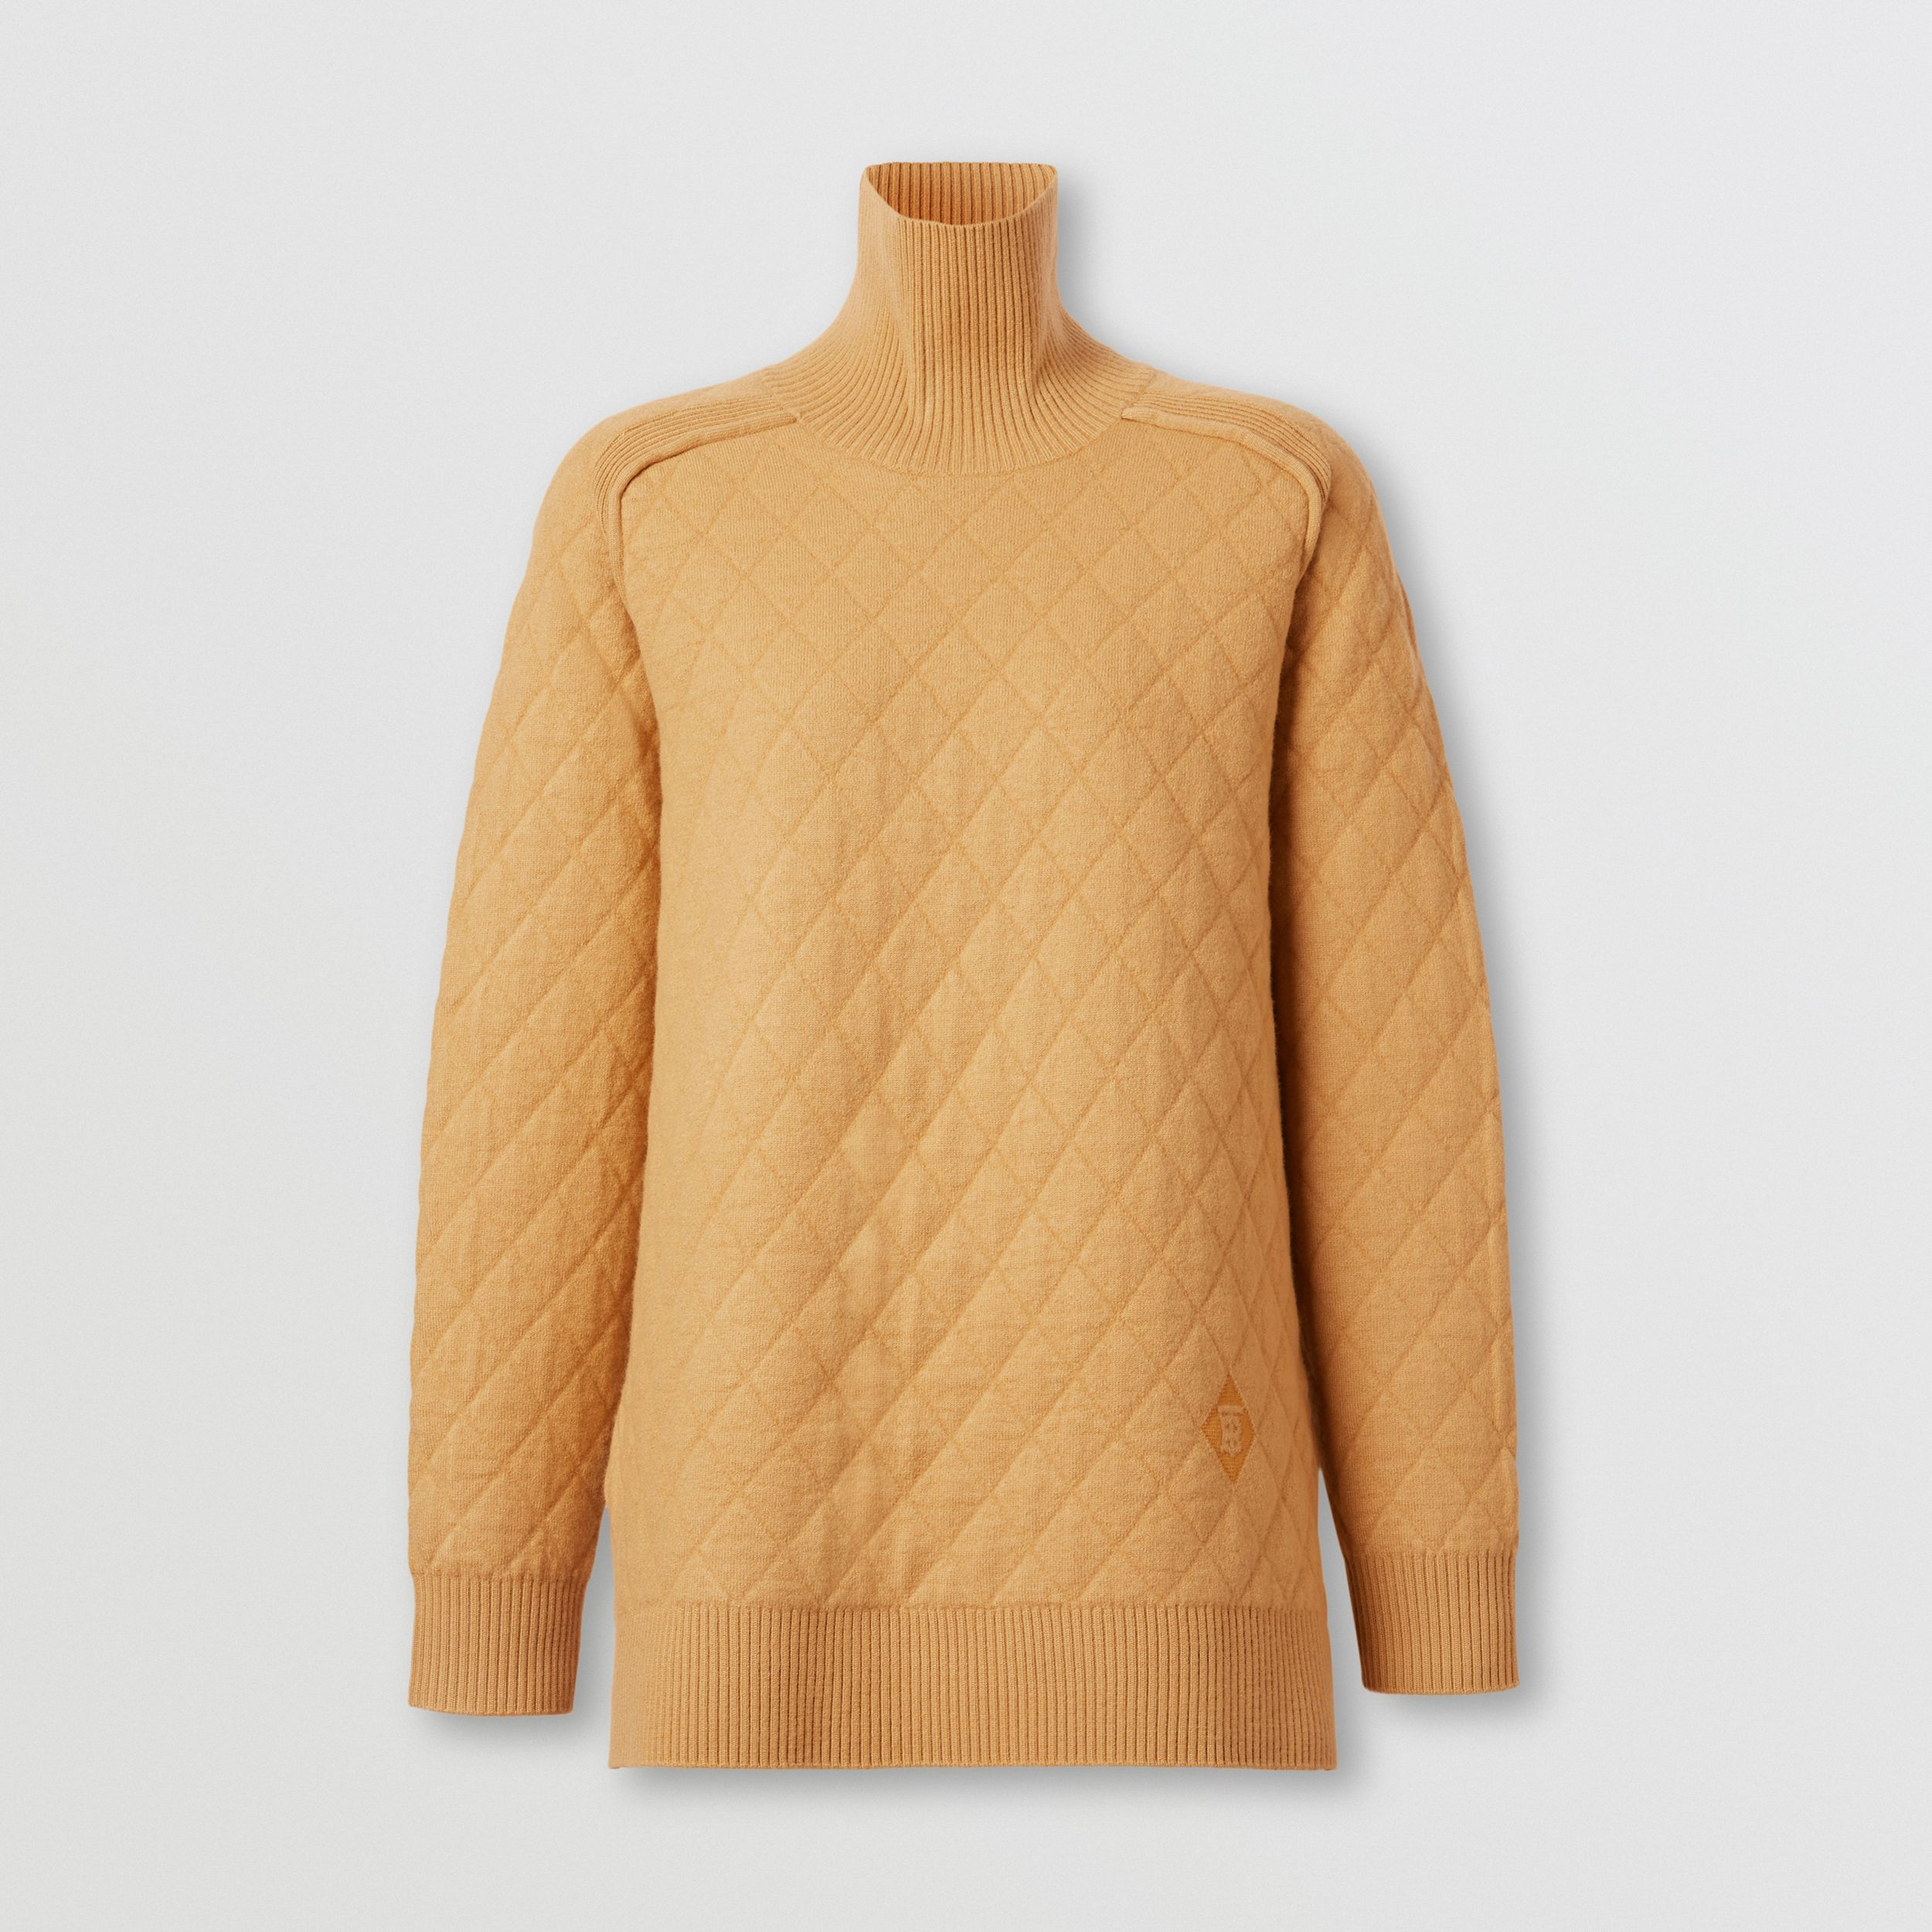 Diamond Knit Wool Funnel Neck Sweater in Camel - Women | Burberry - 4